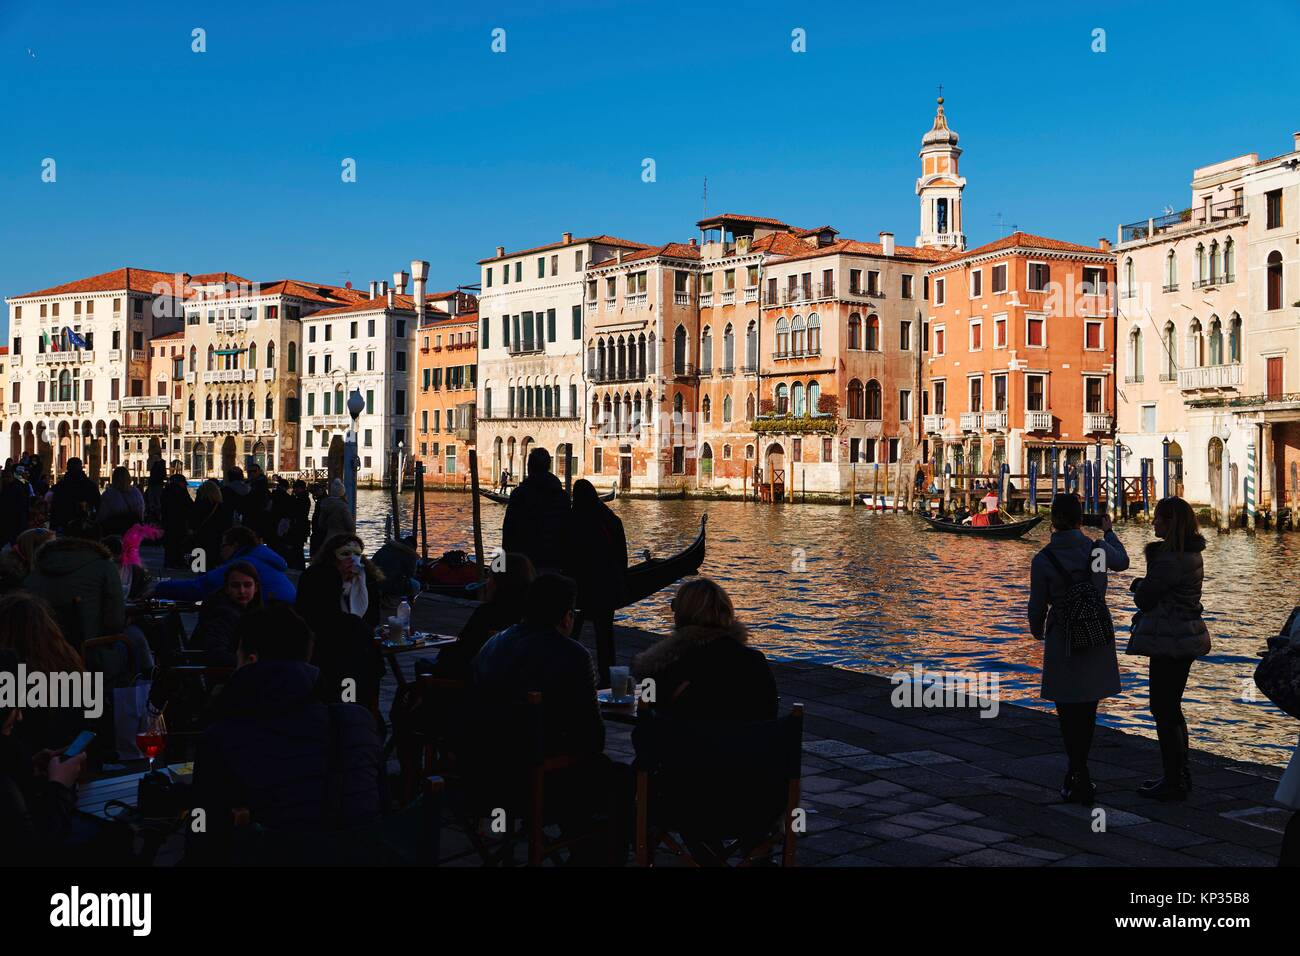 The Grand Canal in Venice, Italy - Stock Image